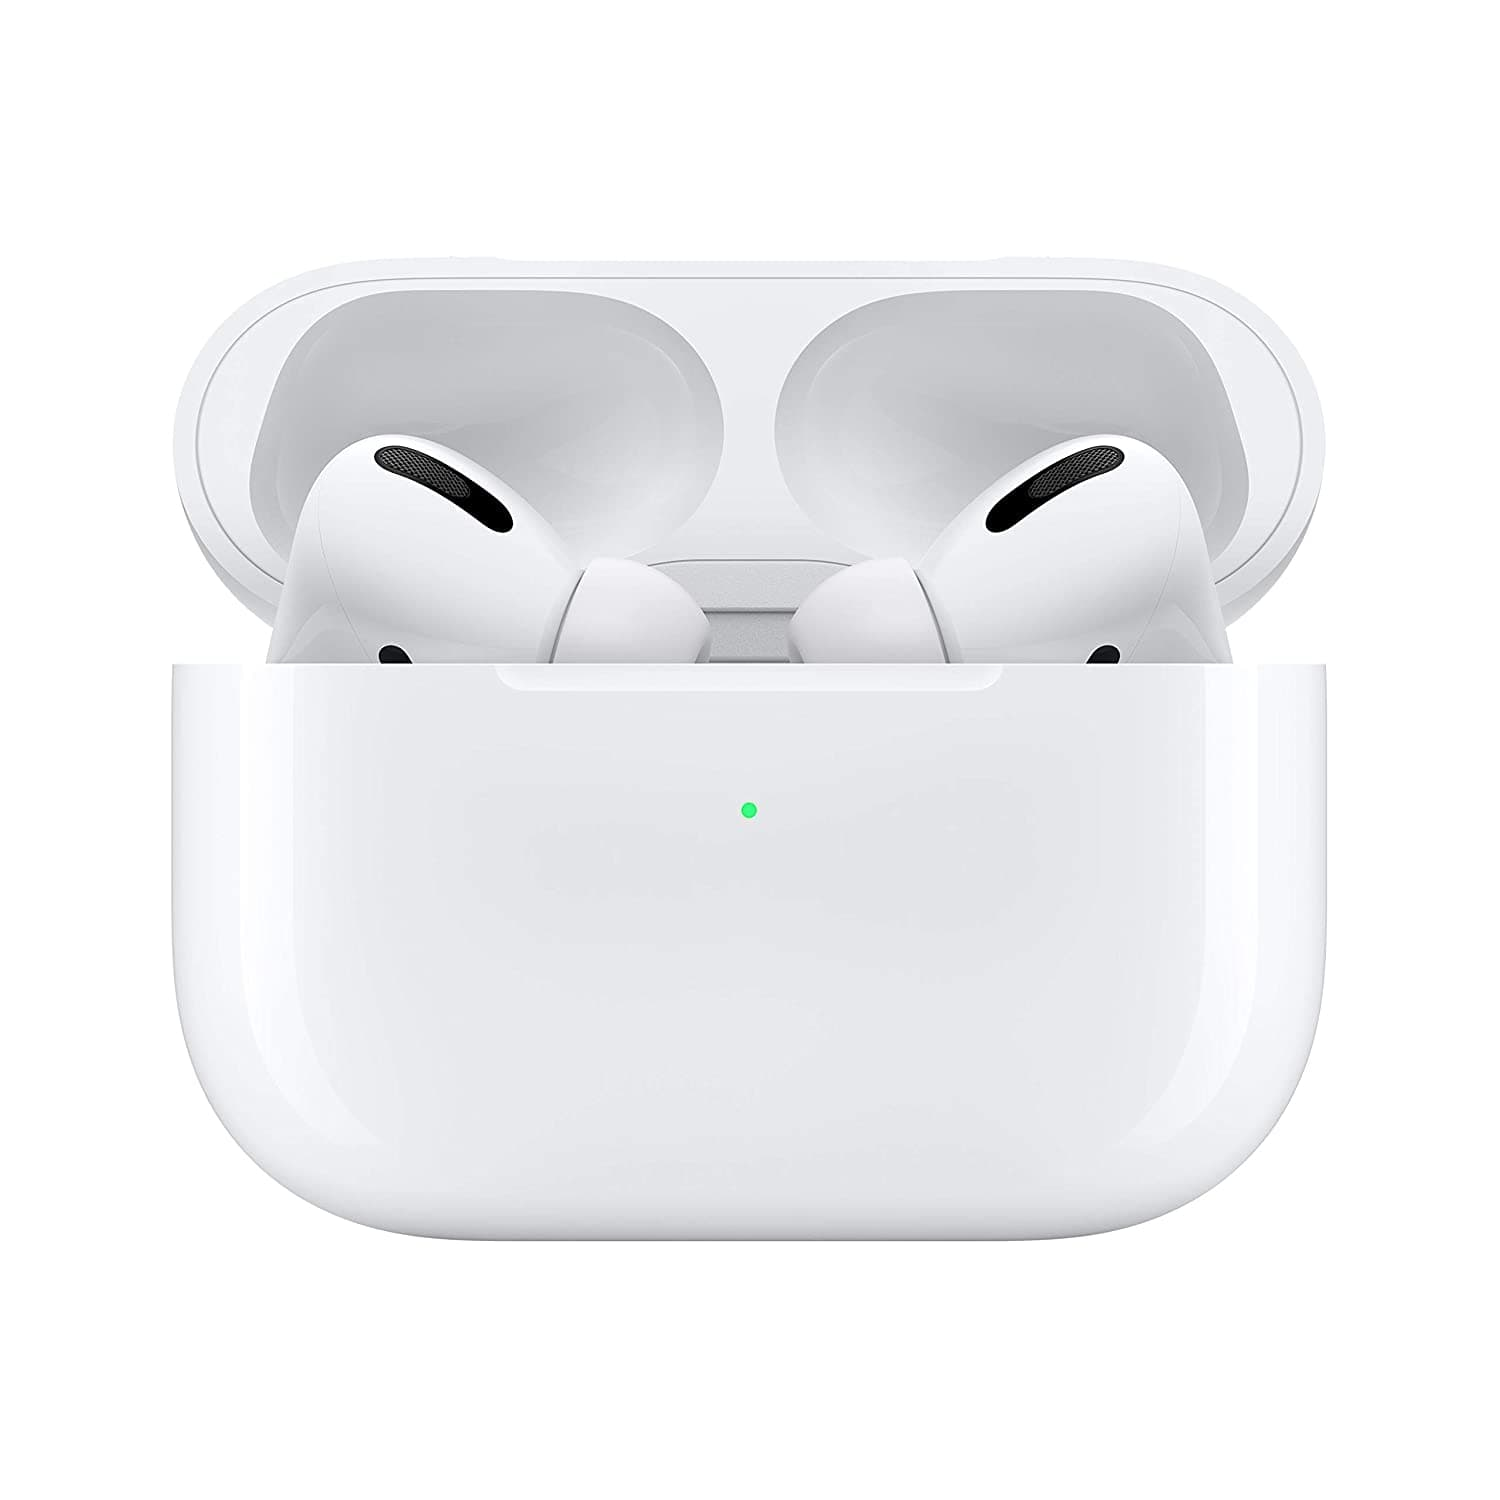 Apple AirPods Pro w/ Wireless Charging Case $219.98